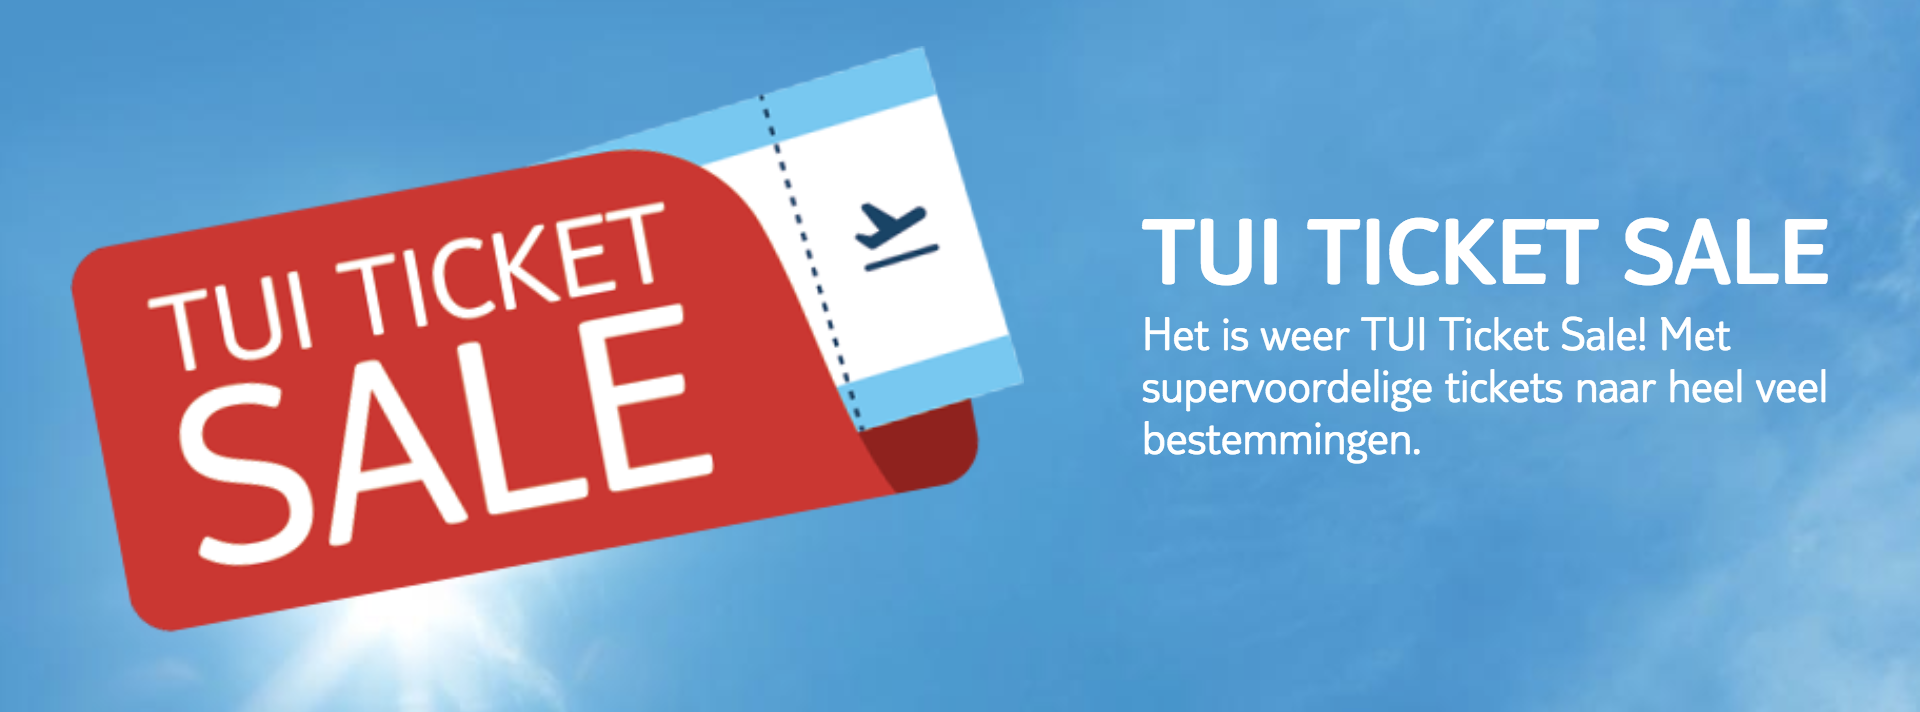 Ticket Sale TUI 2019